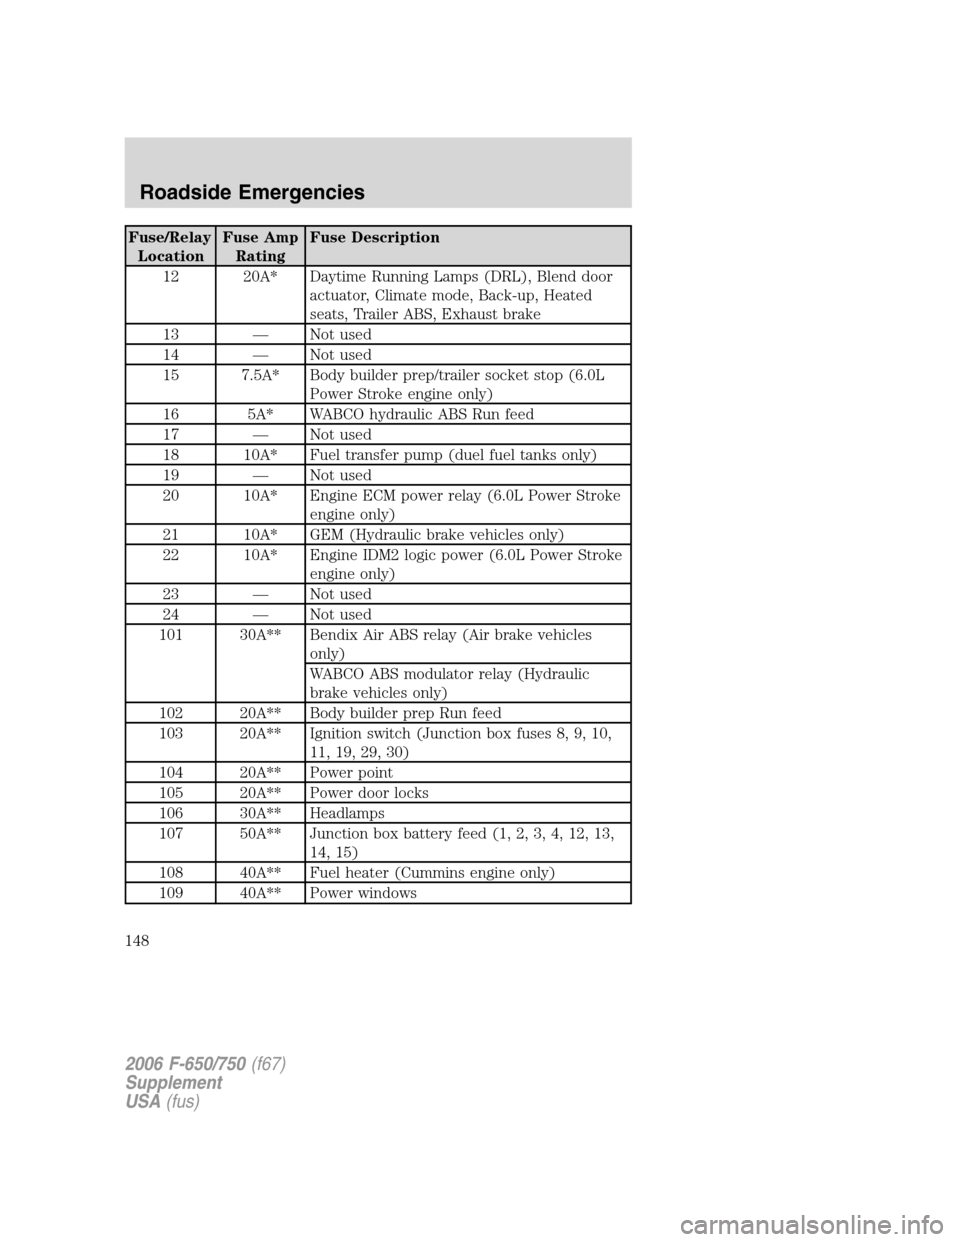 Fuses Ford F650 2006 11g Owners Manual Fuse Box Page 148 Relay